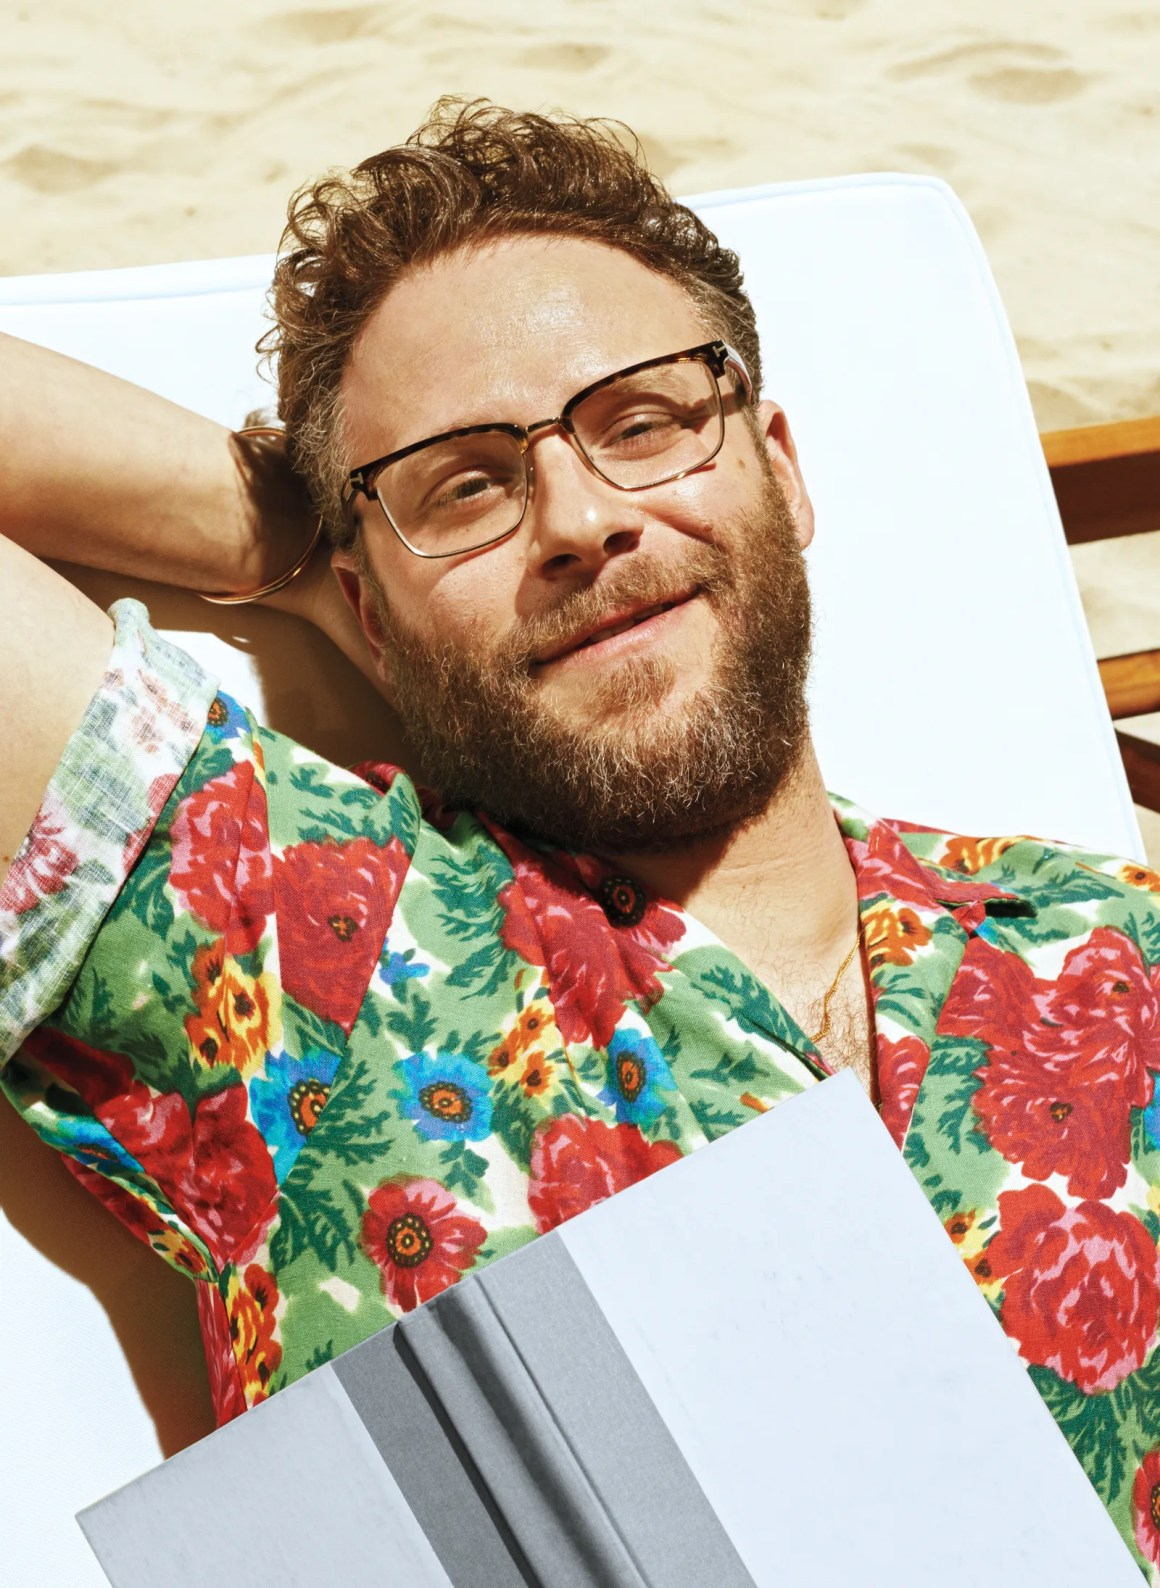 seth rogen lounging on a beach chair with an open book resting on his chest